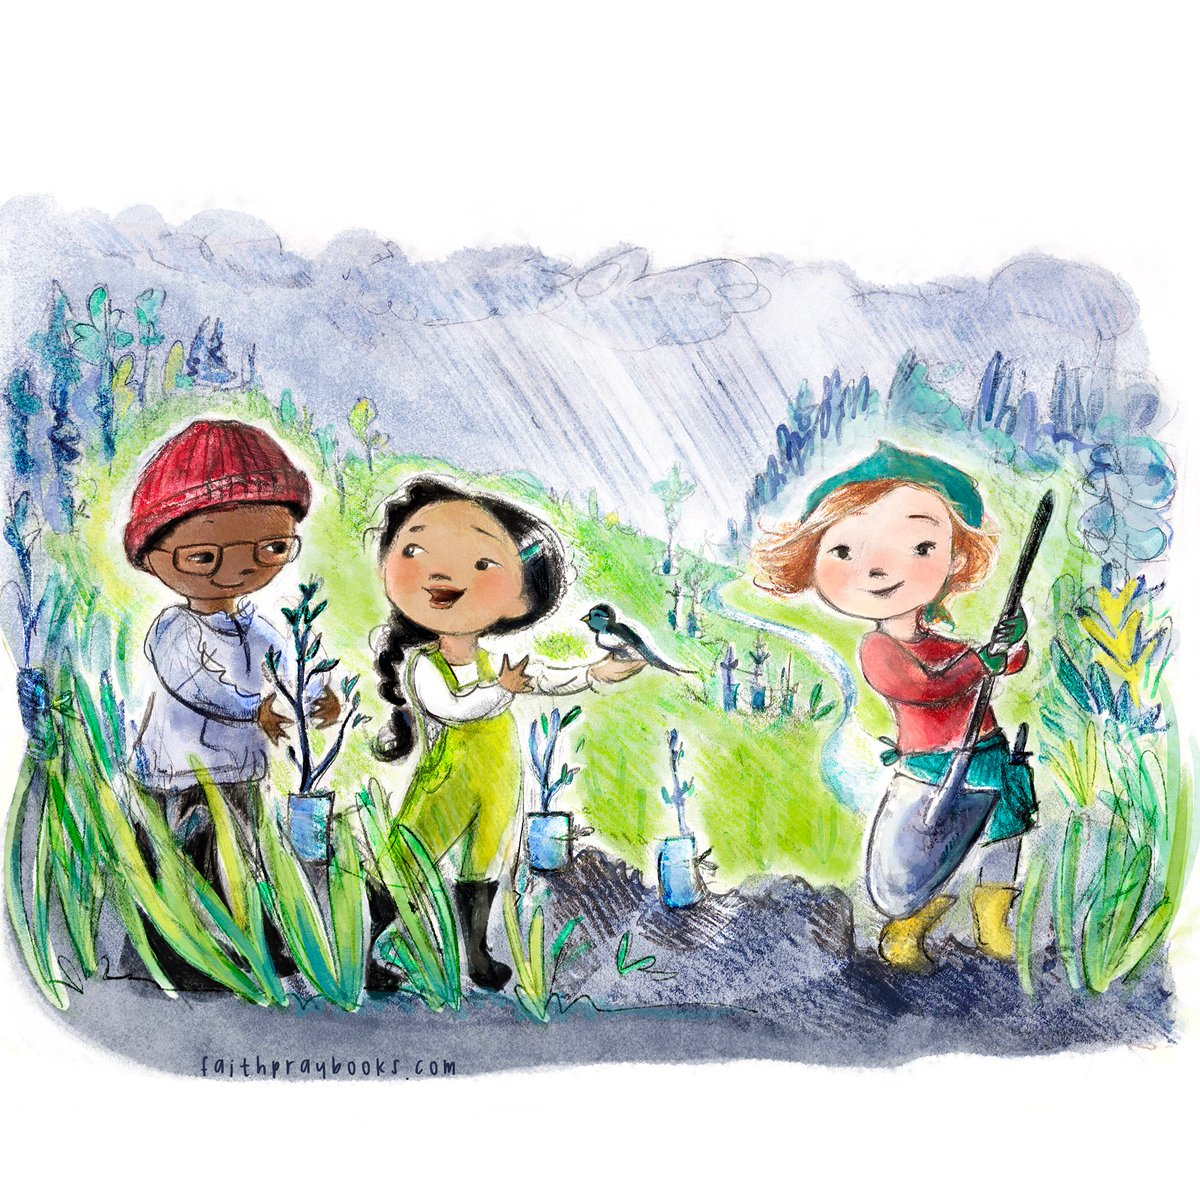 Happy Friday, friends! This is what kids do on field trips in our town - habitat restoration. Because fish need trees &amp; trees need fish.   #LemonYellow for #colour_collective #northolympicsalmoncoalition  #kidlitart <br>http://pic.twitter.com/REJ2YoSArx